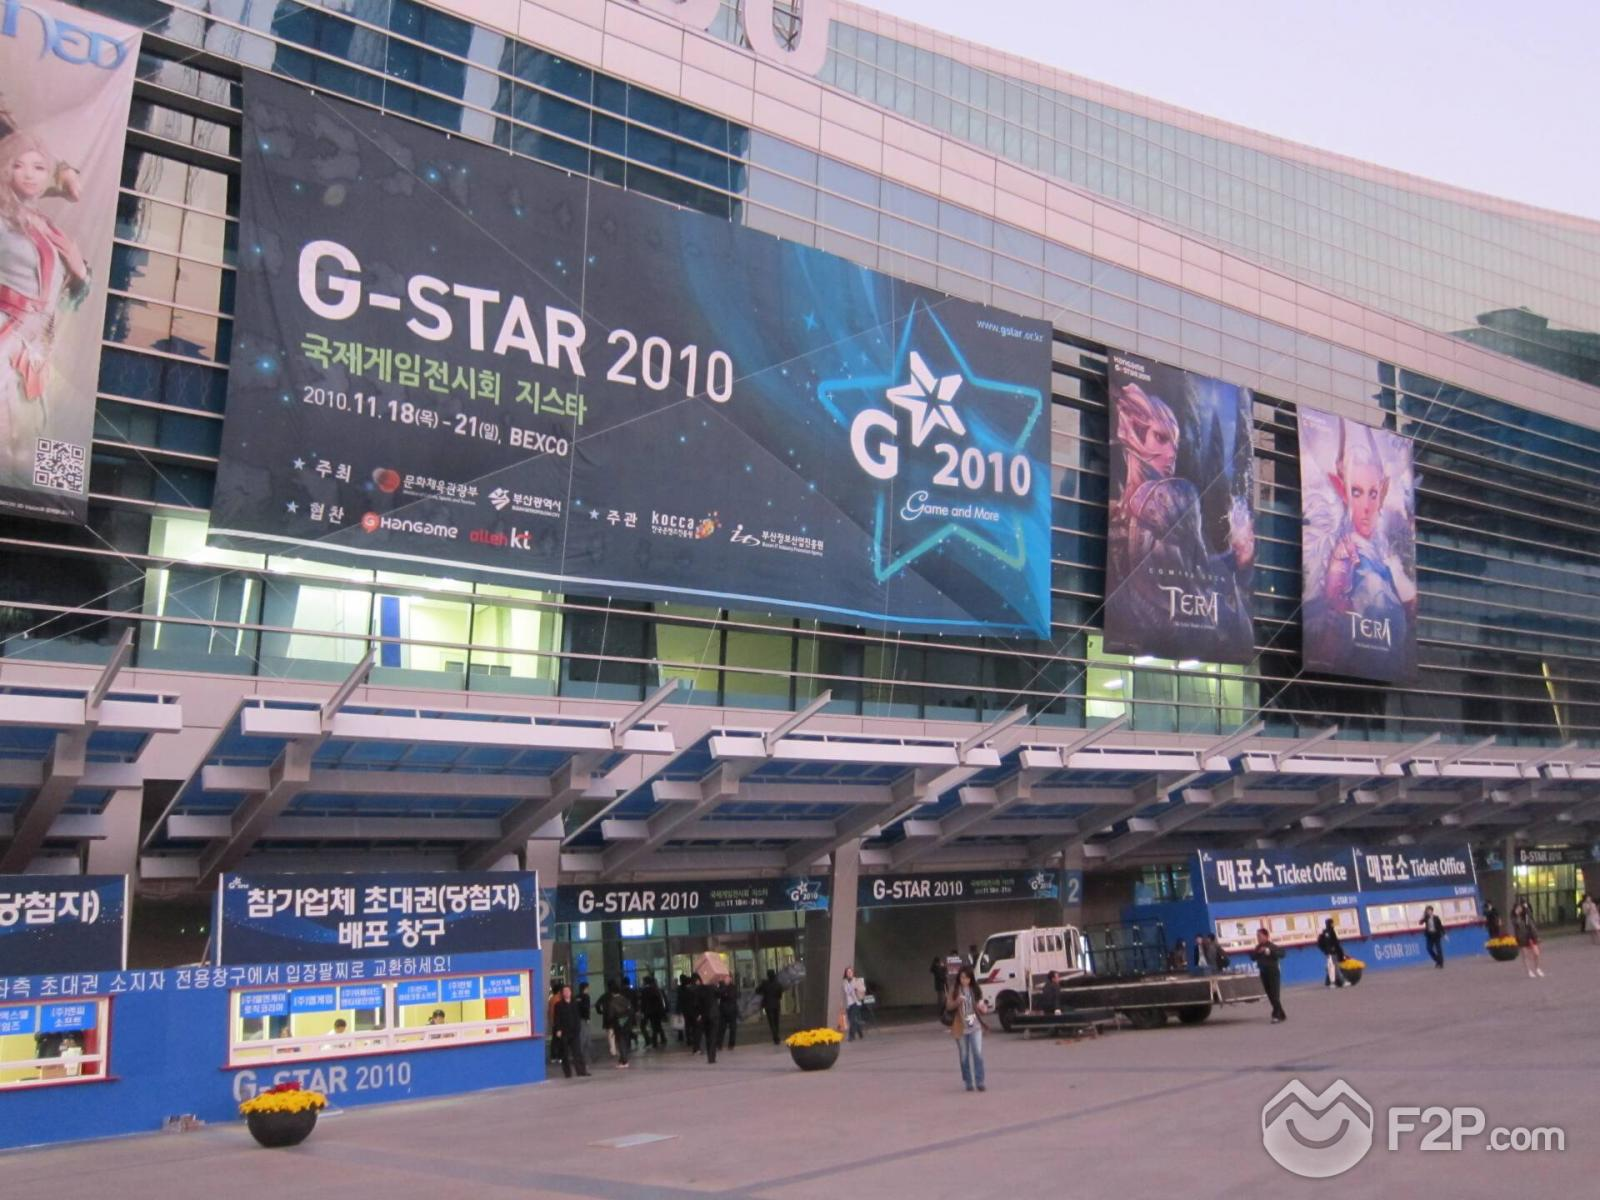 Click image for larger version.Name:Gstar 2010 F2P first day 32.jpgViews:61Size:227.4 KBID:1885